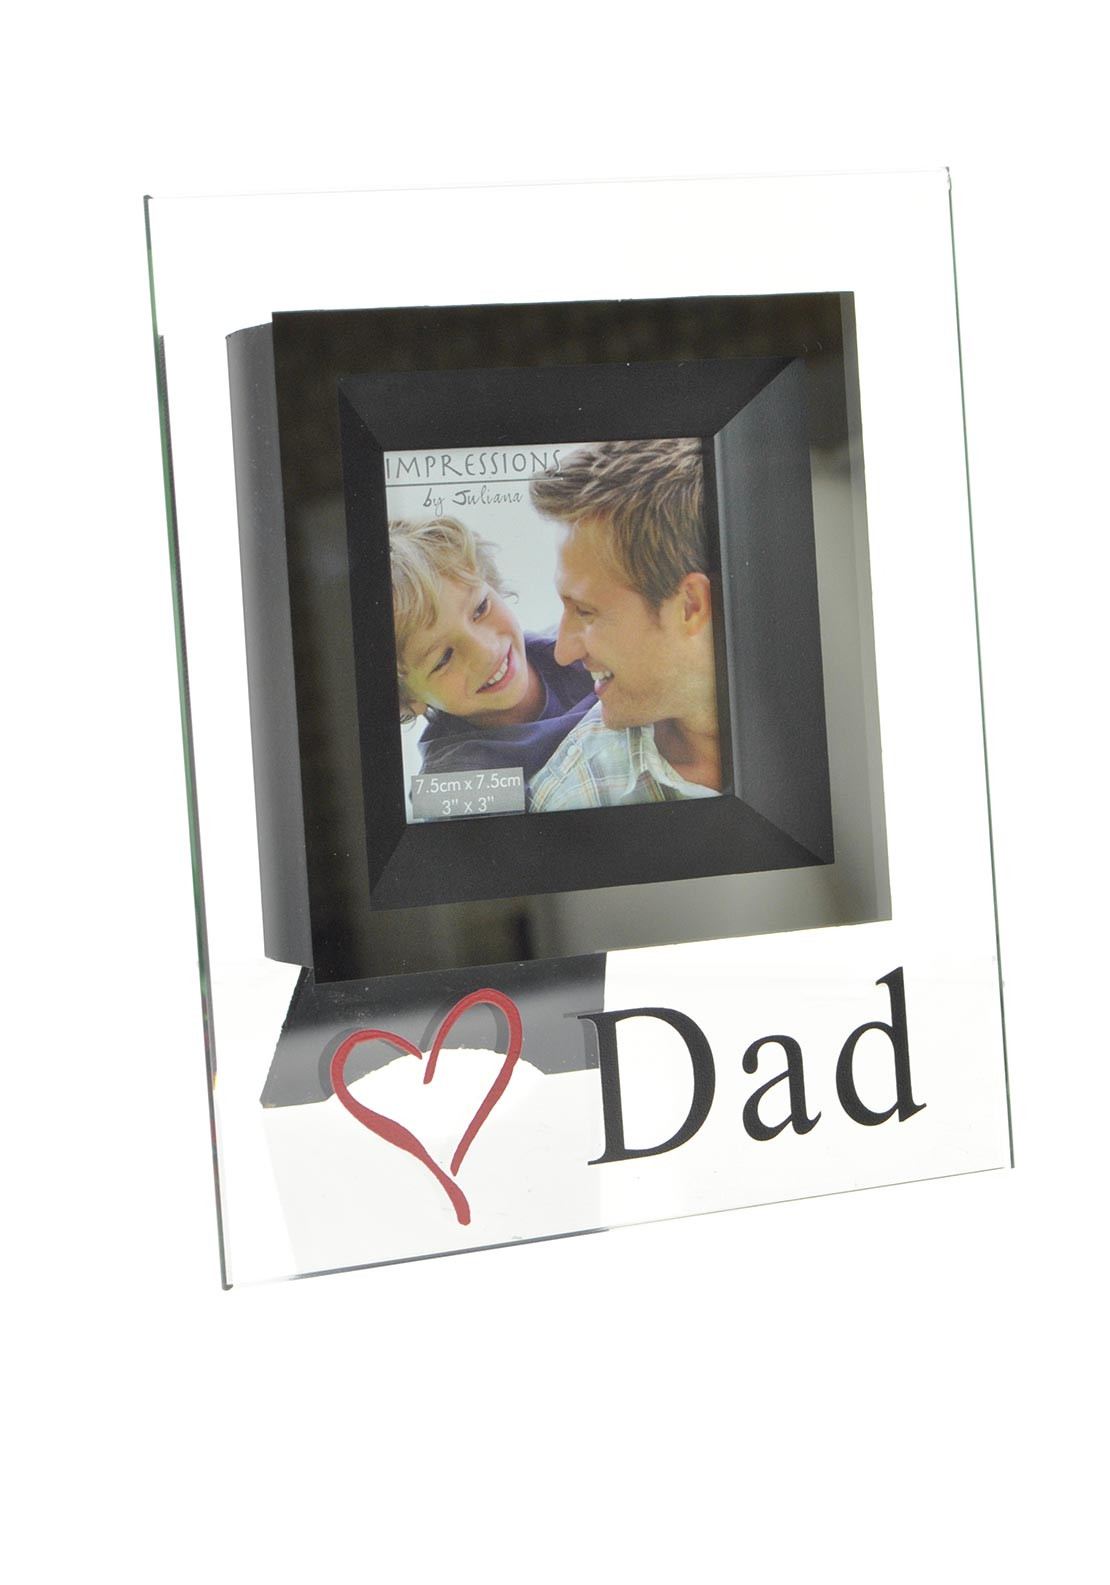 Widdop & Bingham Glass Photo Frame for Dad's, 7.5 x 7.5cm